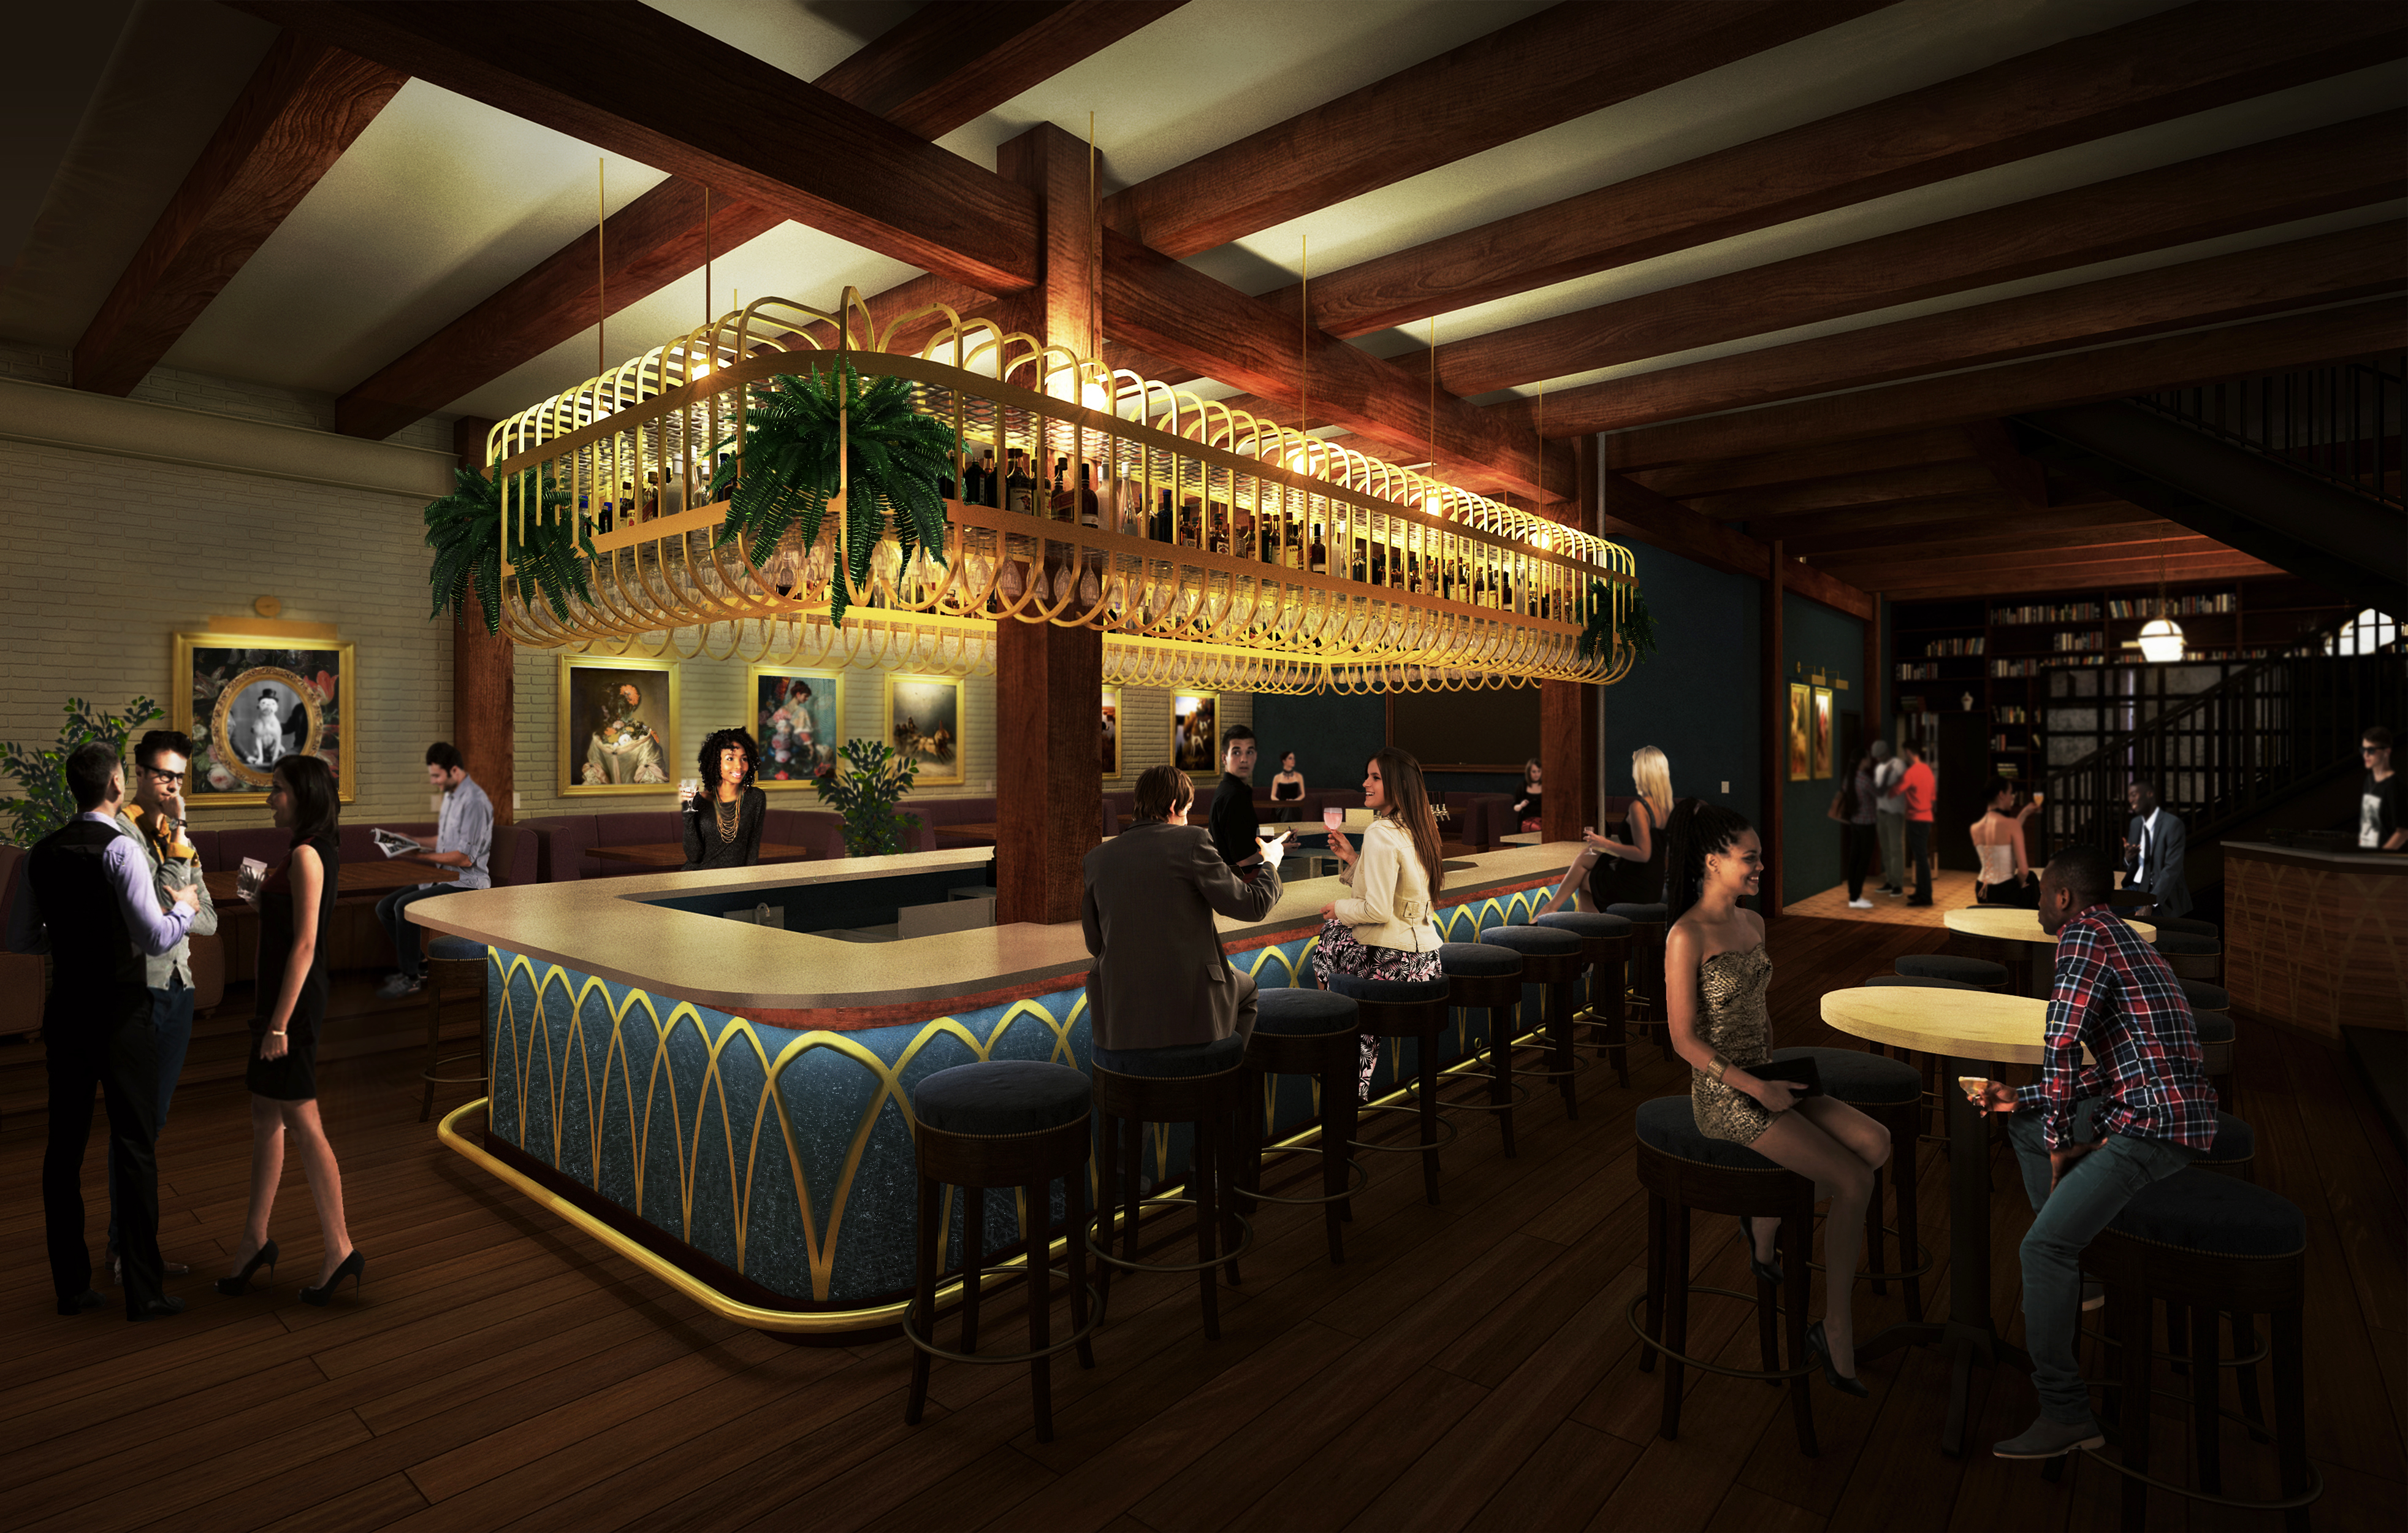 A rendering of an center island bar at an upcoming Chicago bar.